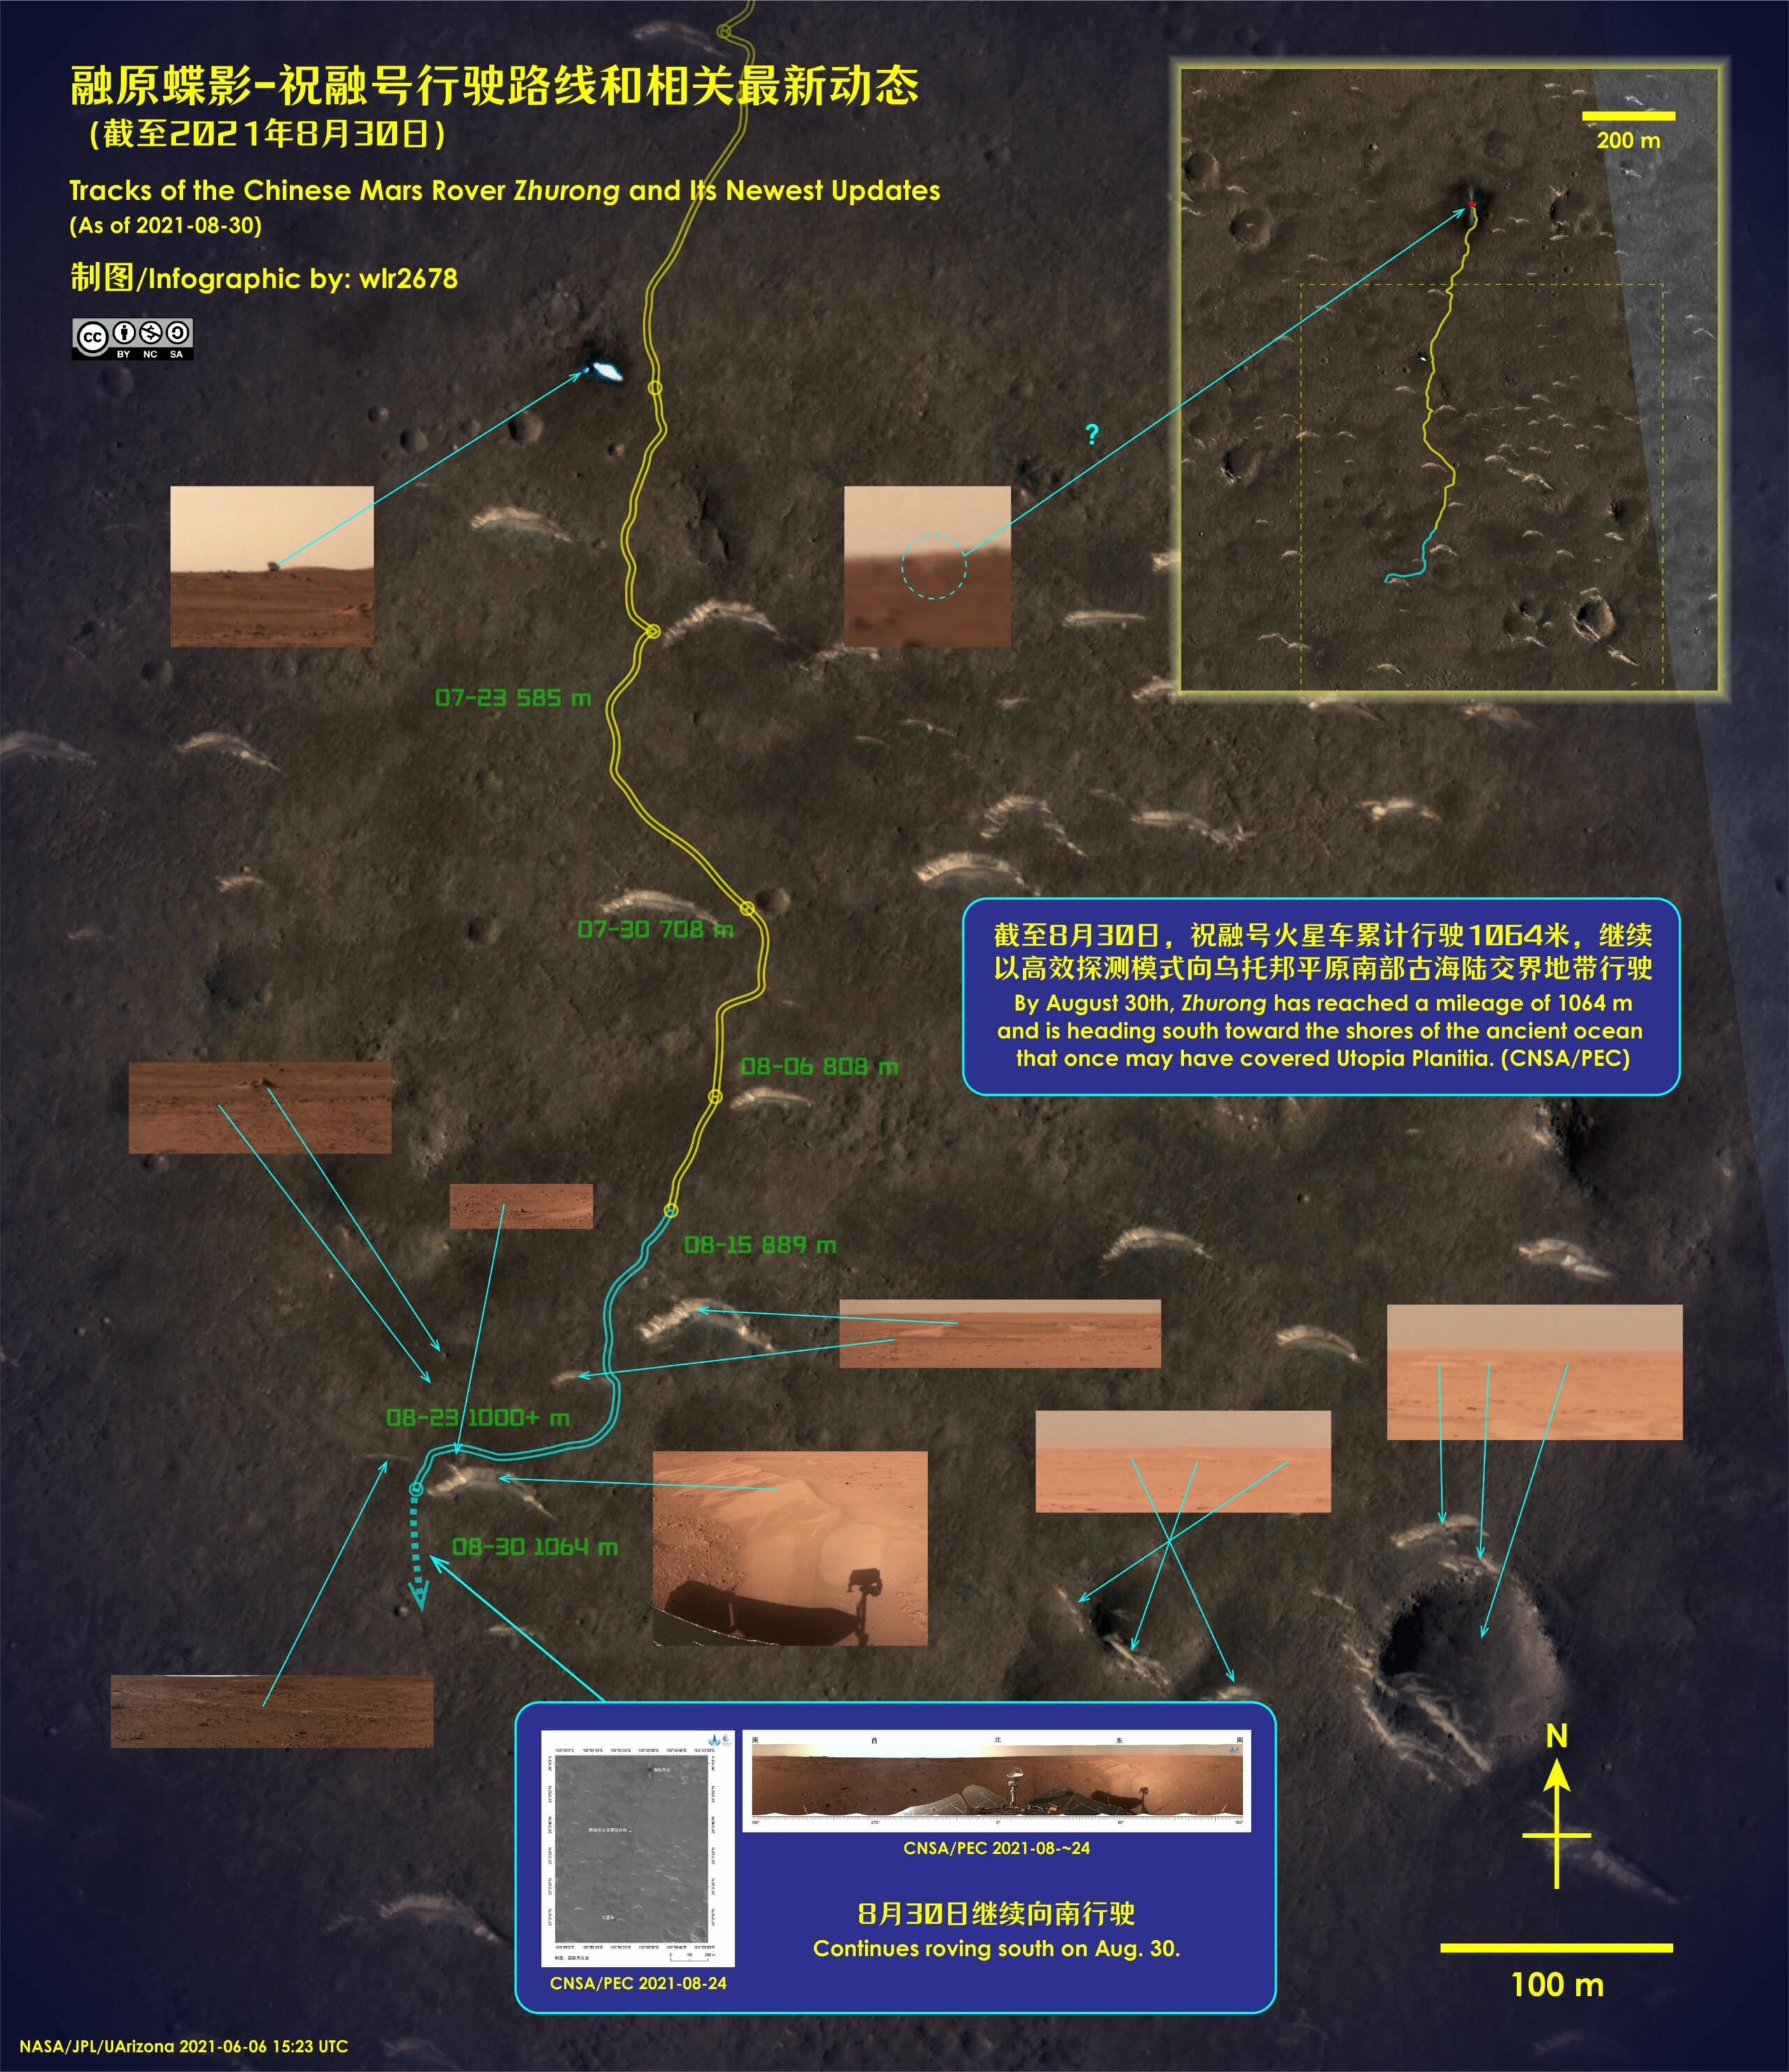 [Chine] Mission Tianwen-1 (orbiteur + atterrisseur + rover) - Page 11 12116